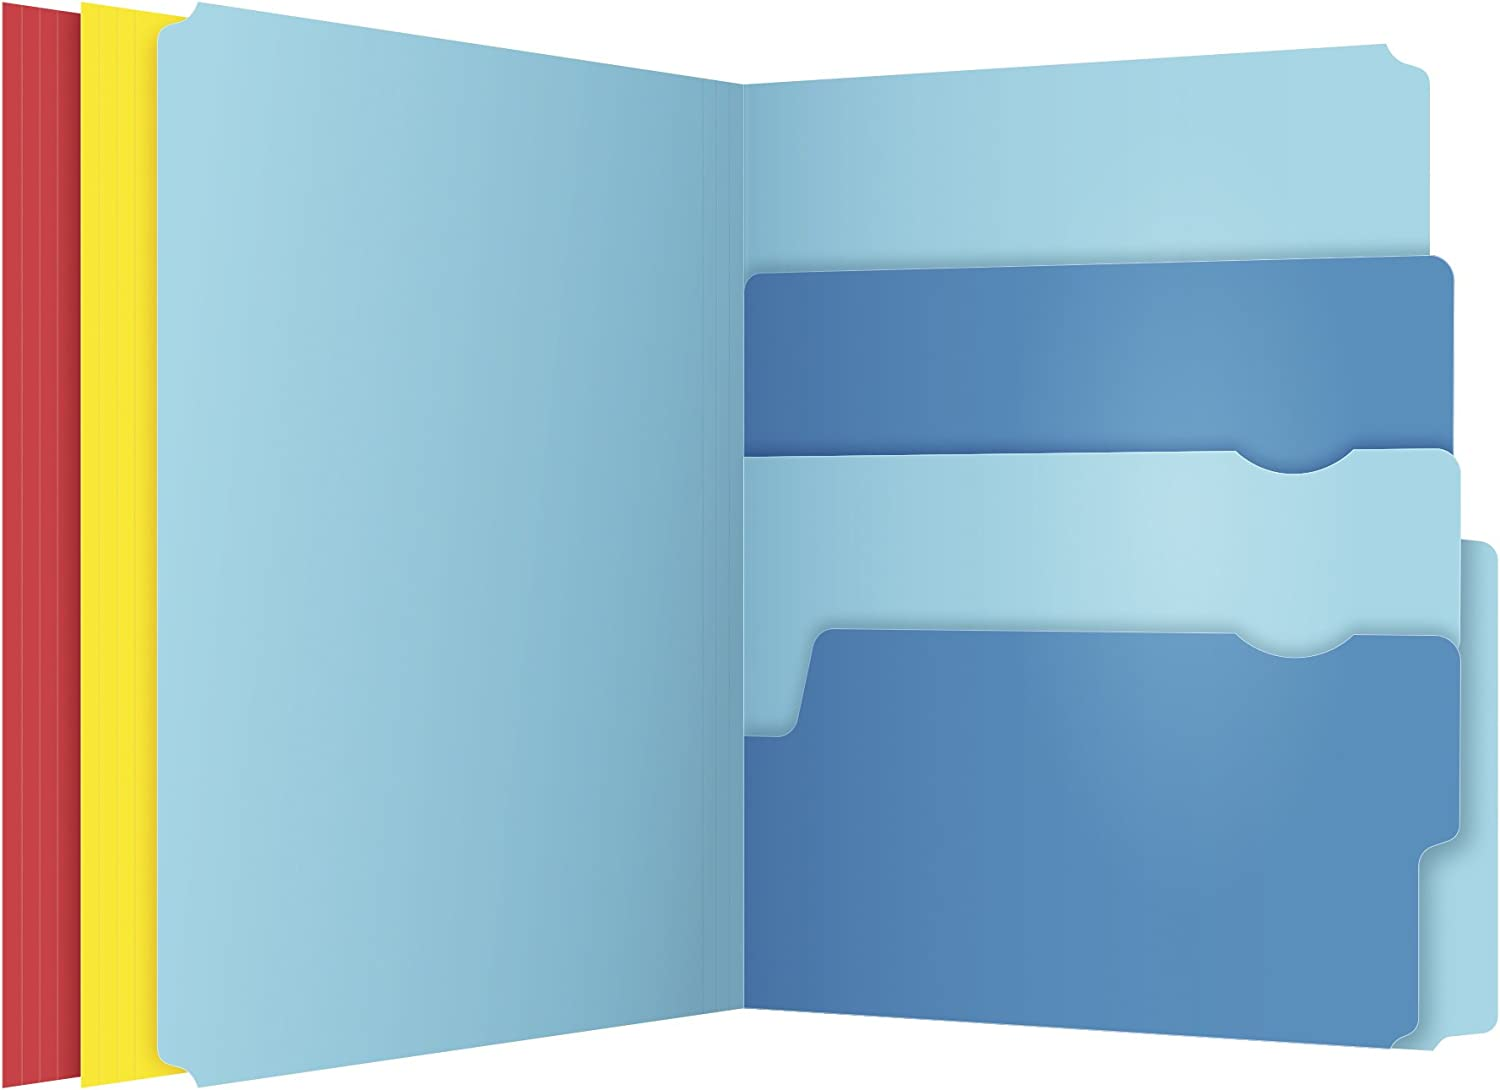 Pendaflex Divide-It-Up File Folder, Letter Size, 24 Count, Assorted Colors (10772) : Office Products